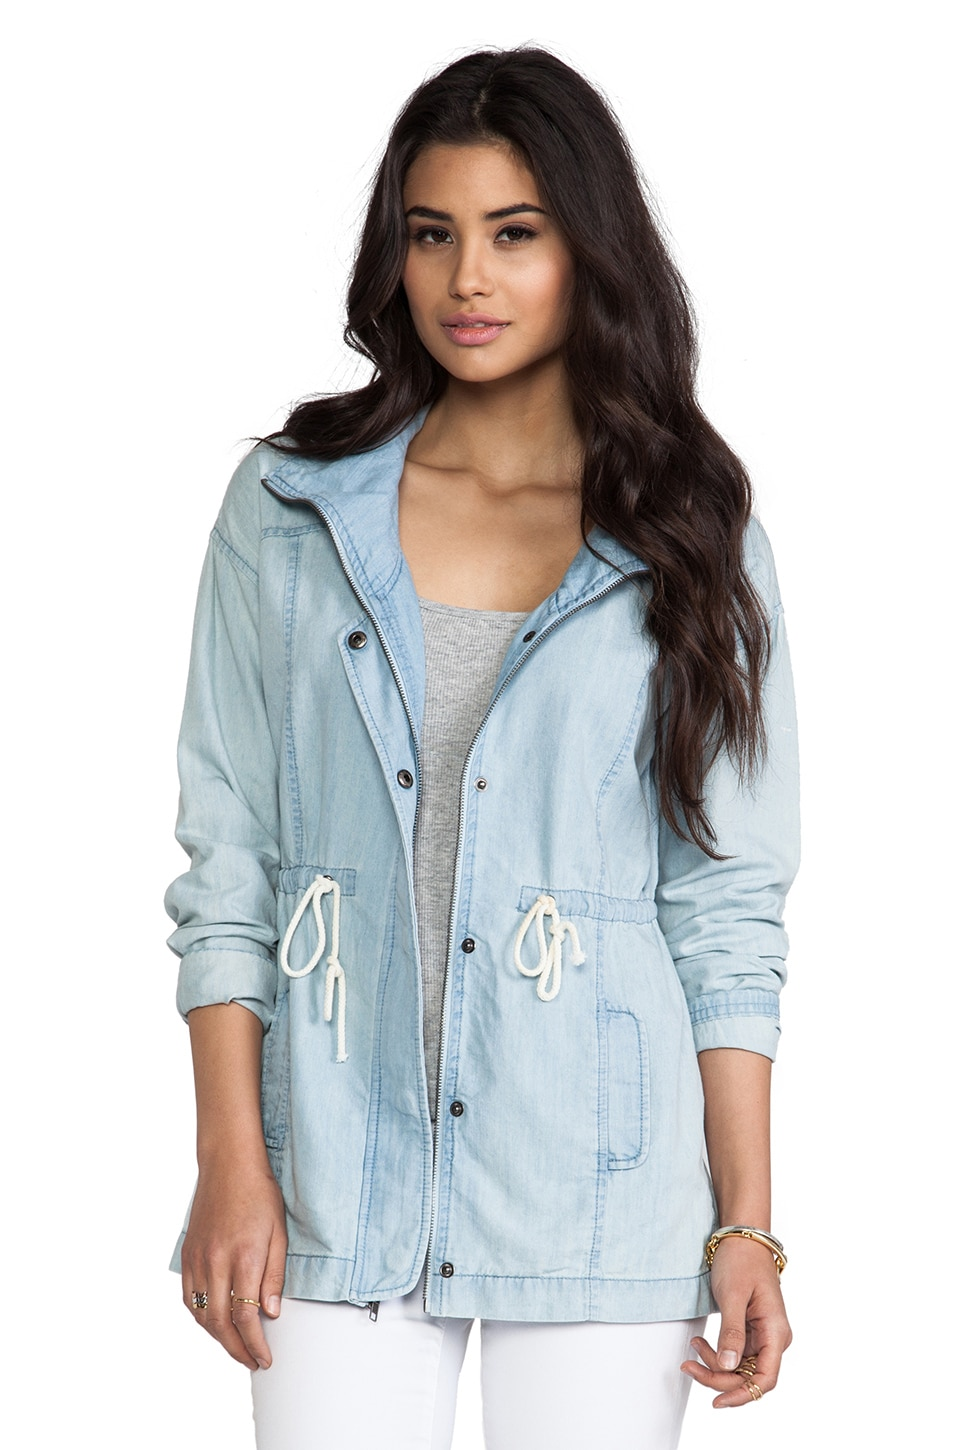 BB Dakota Bregan Chambray Jacket in Light Blue